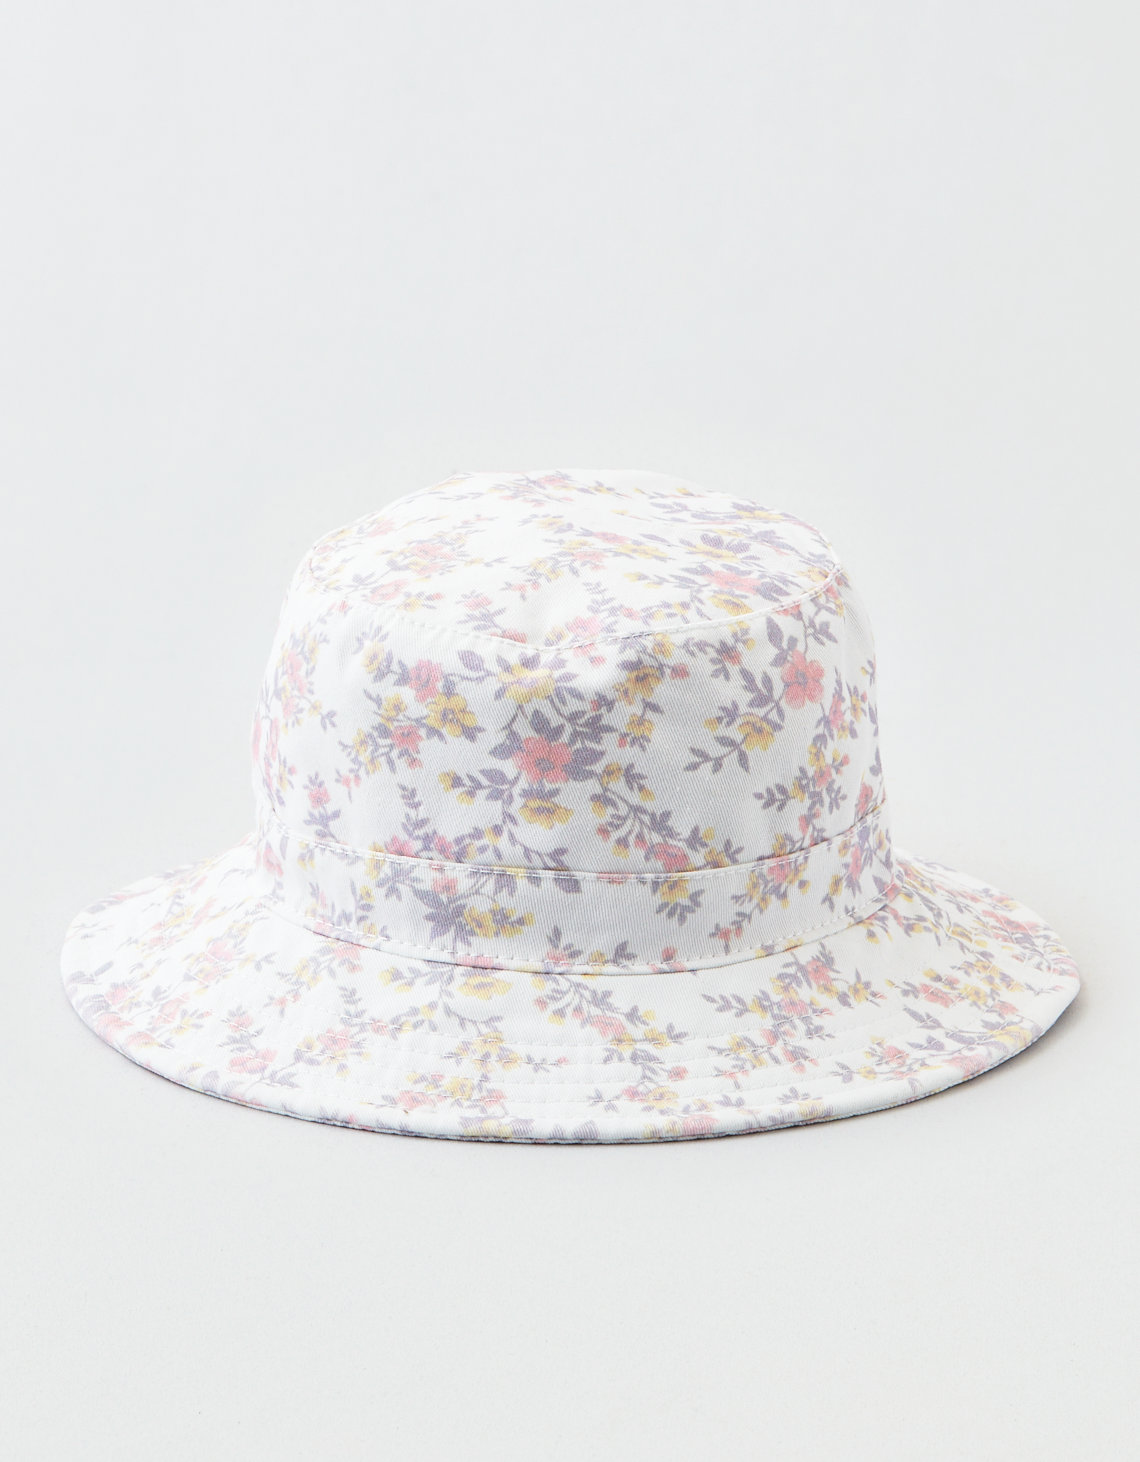 98370125a9a AE Ditsy Floral Bucket Hat. Placeholder image. Product Image